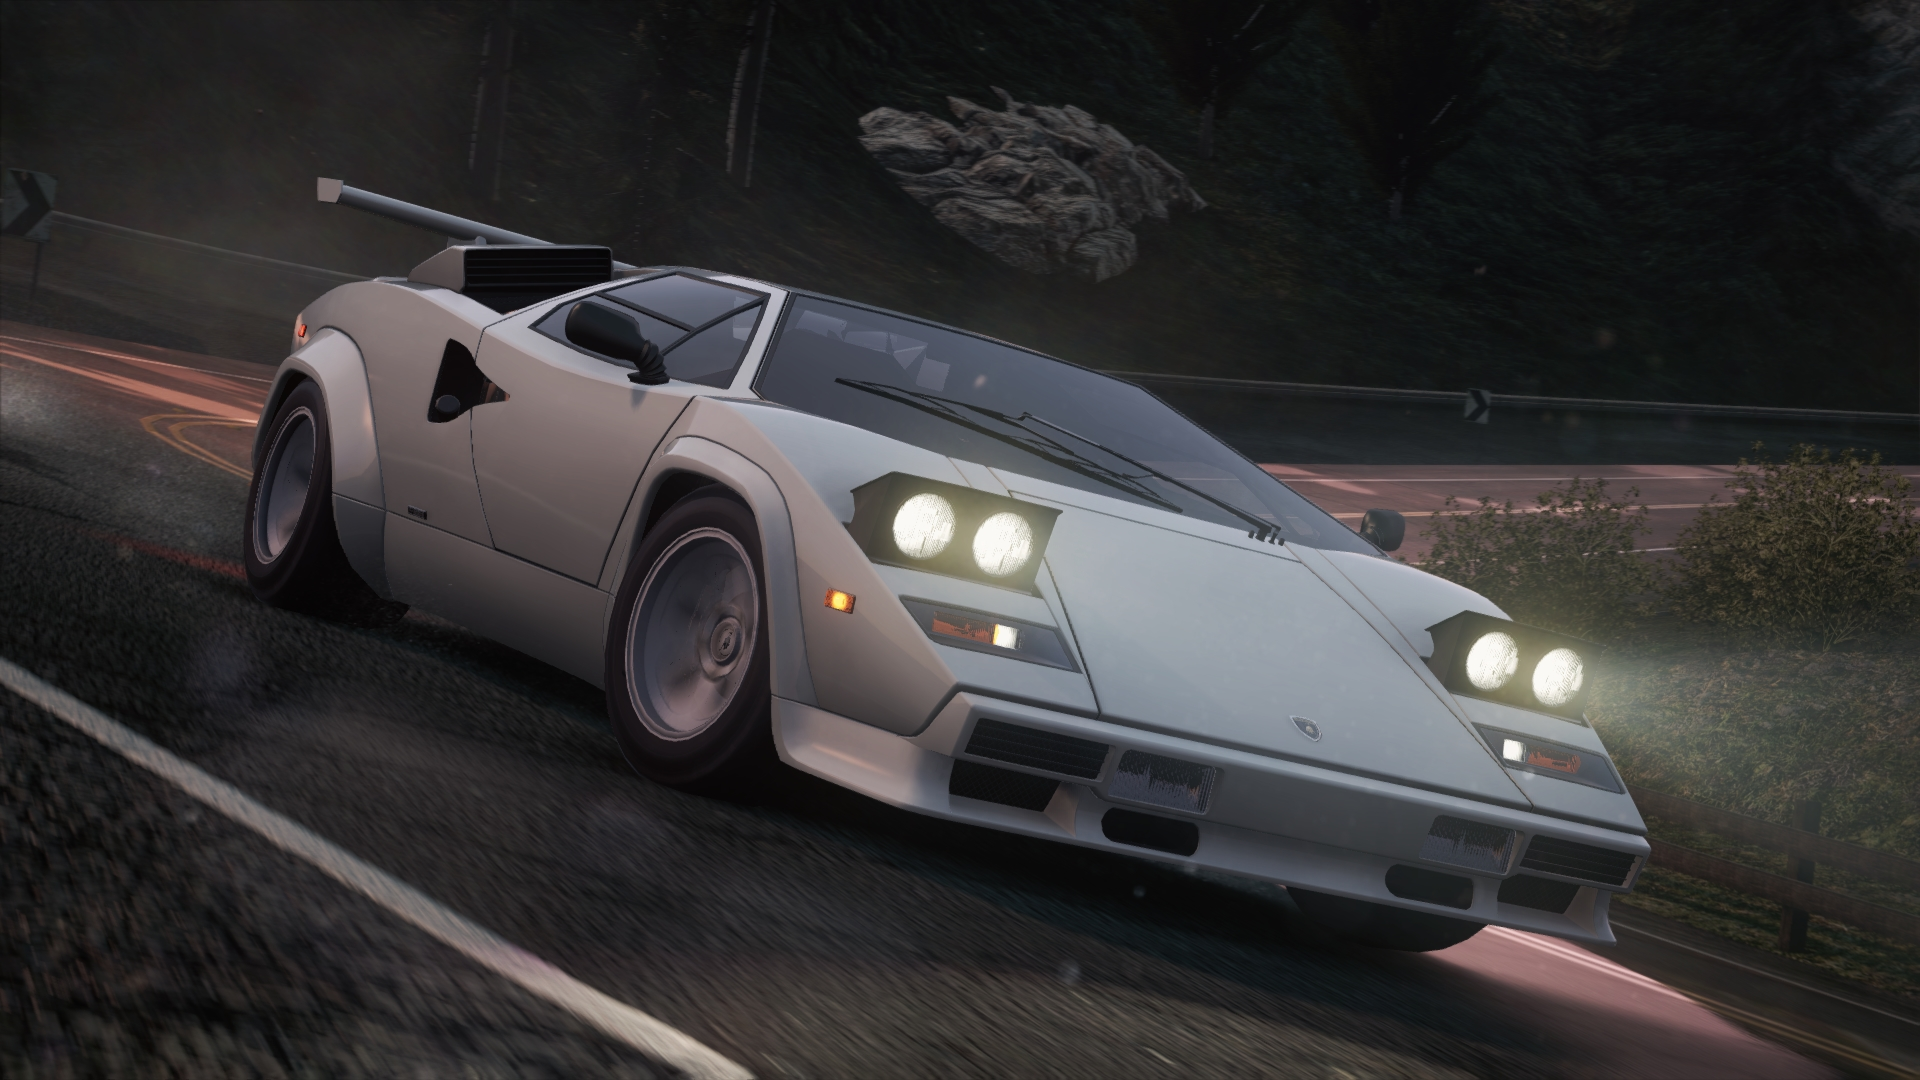 lamborghini countach need for speed need for speed world lamborghini countach and lexus lfa. Black Bedroom Furniture Sets. Home Design Ideas